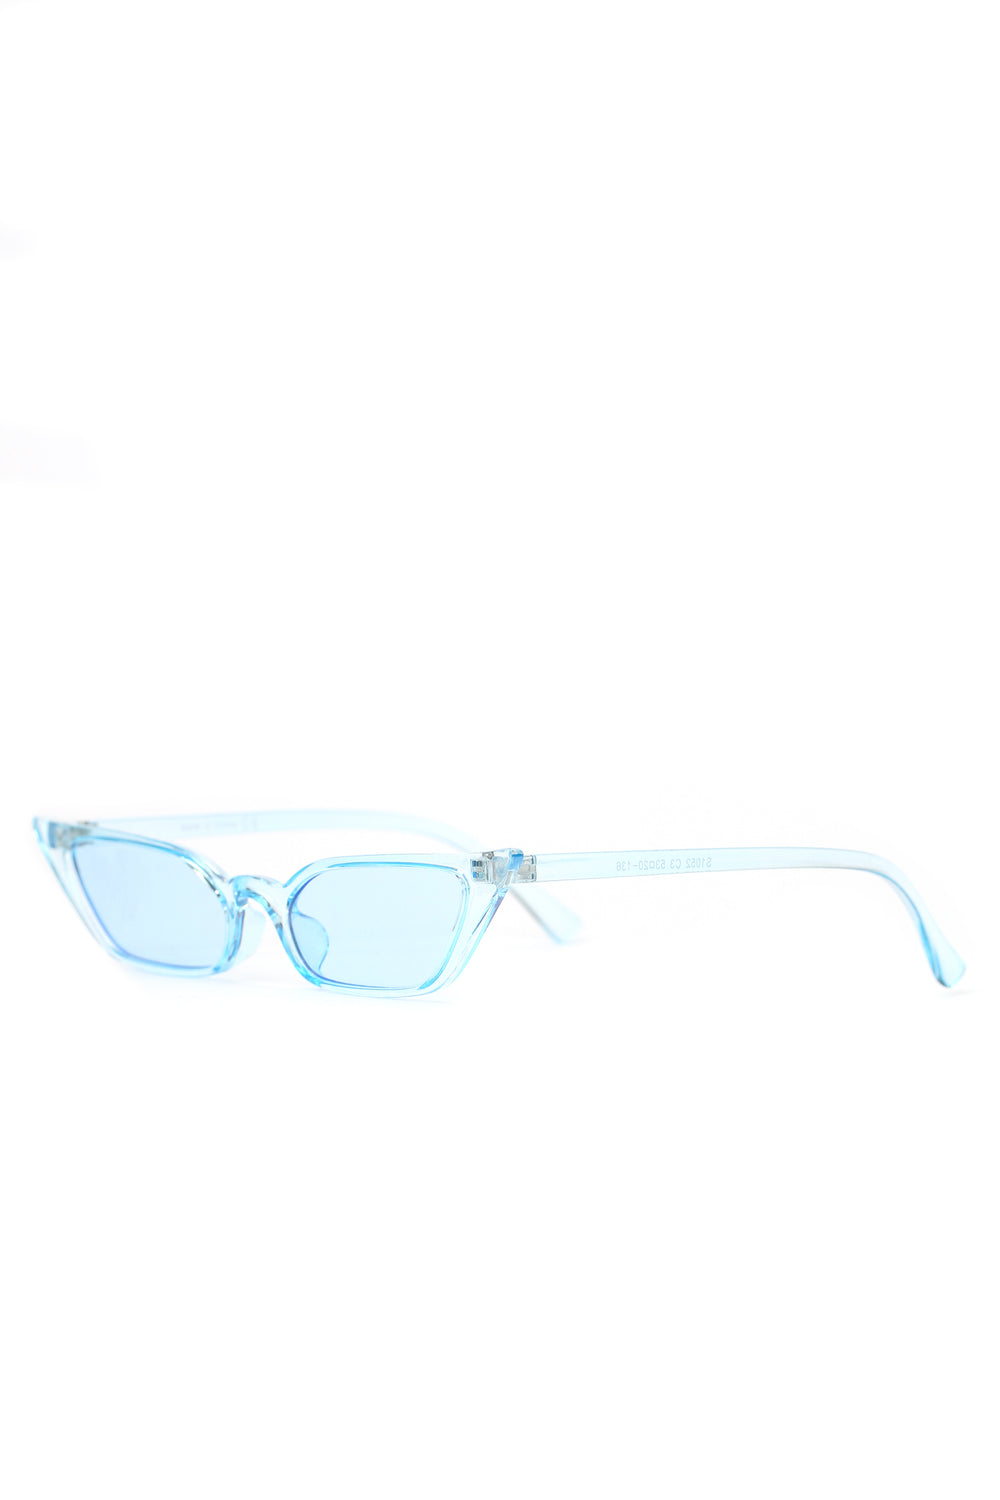 Cat To Know Me Sunglasses - Blue